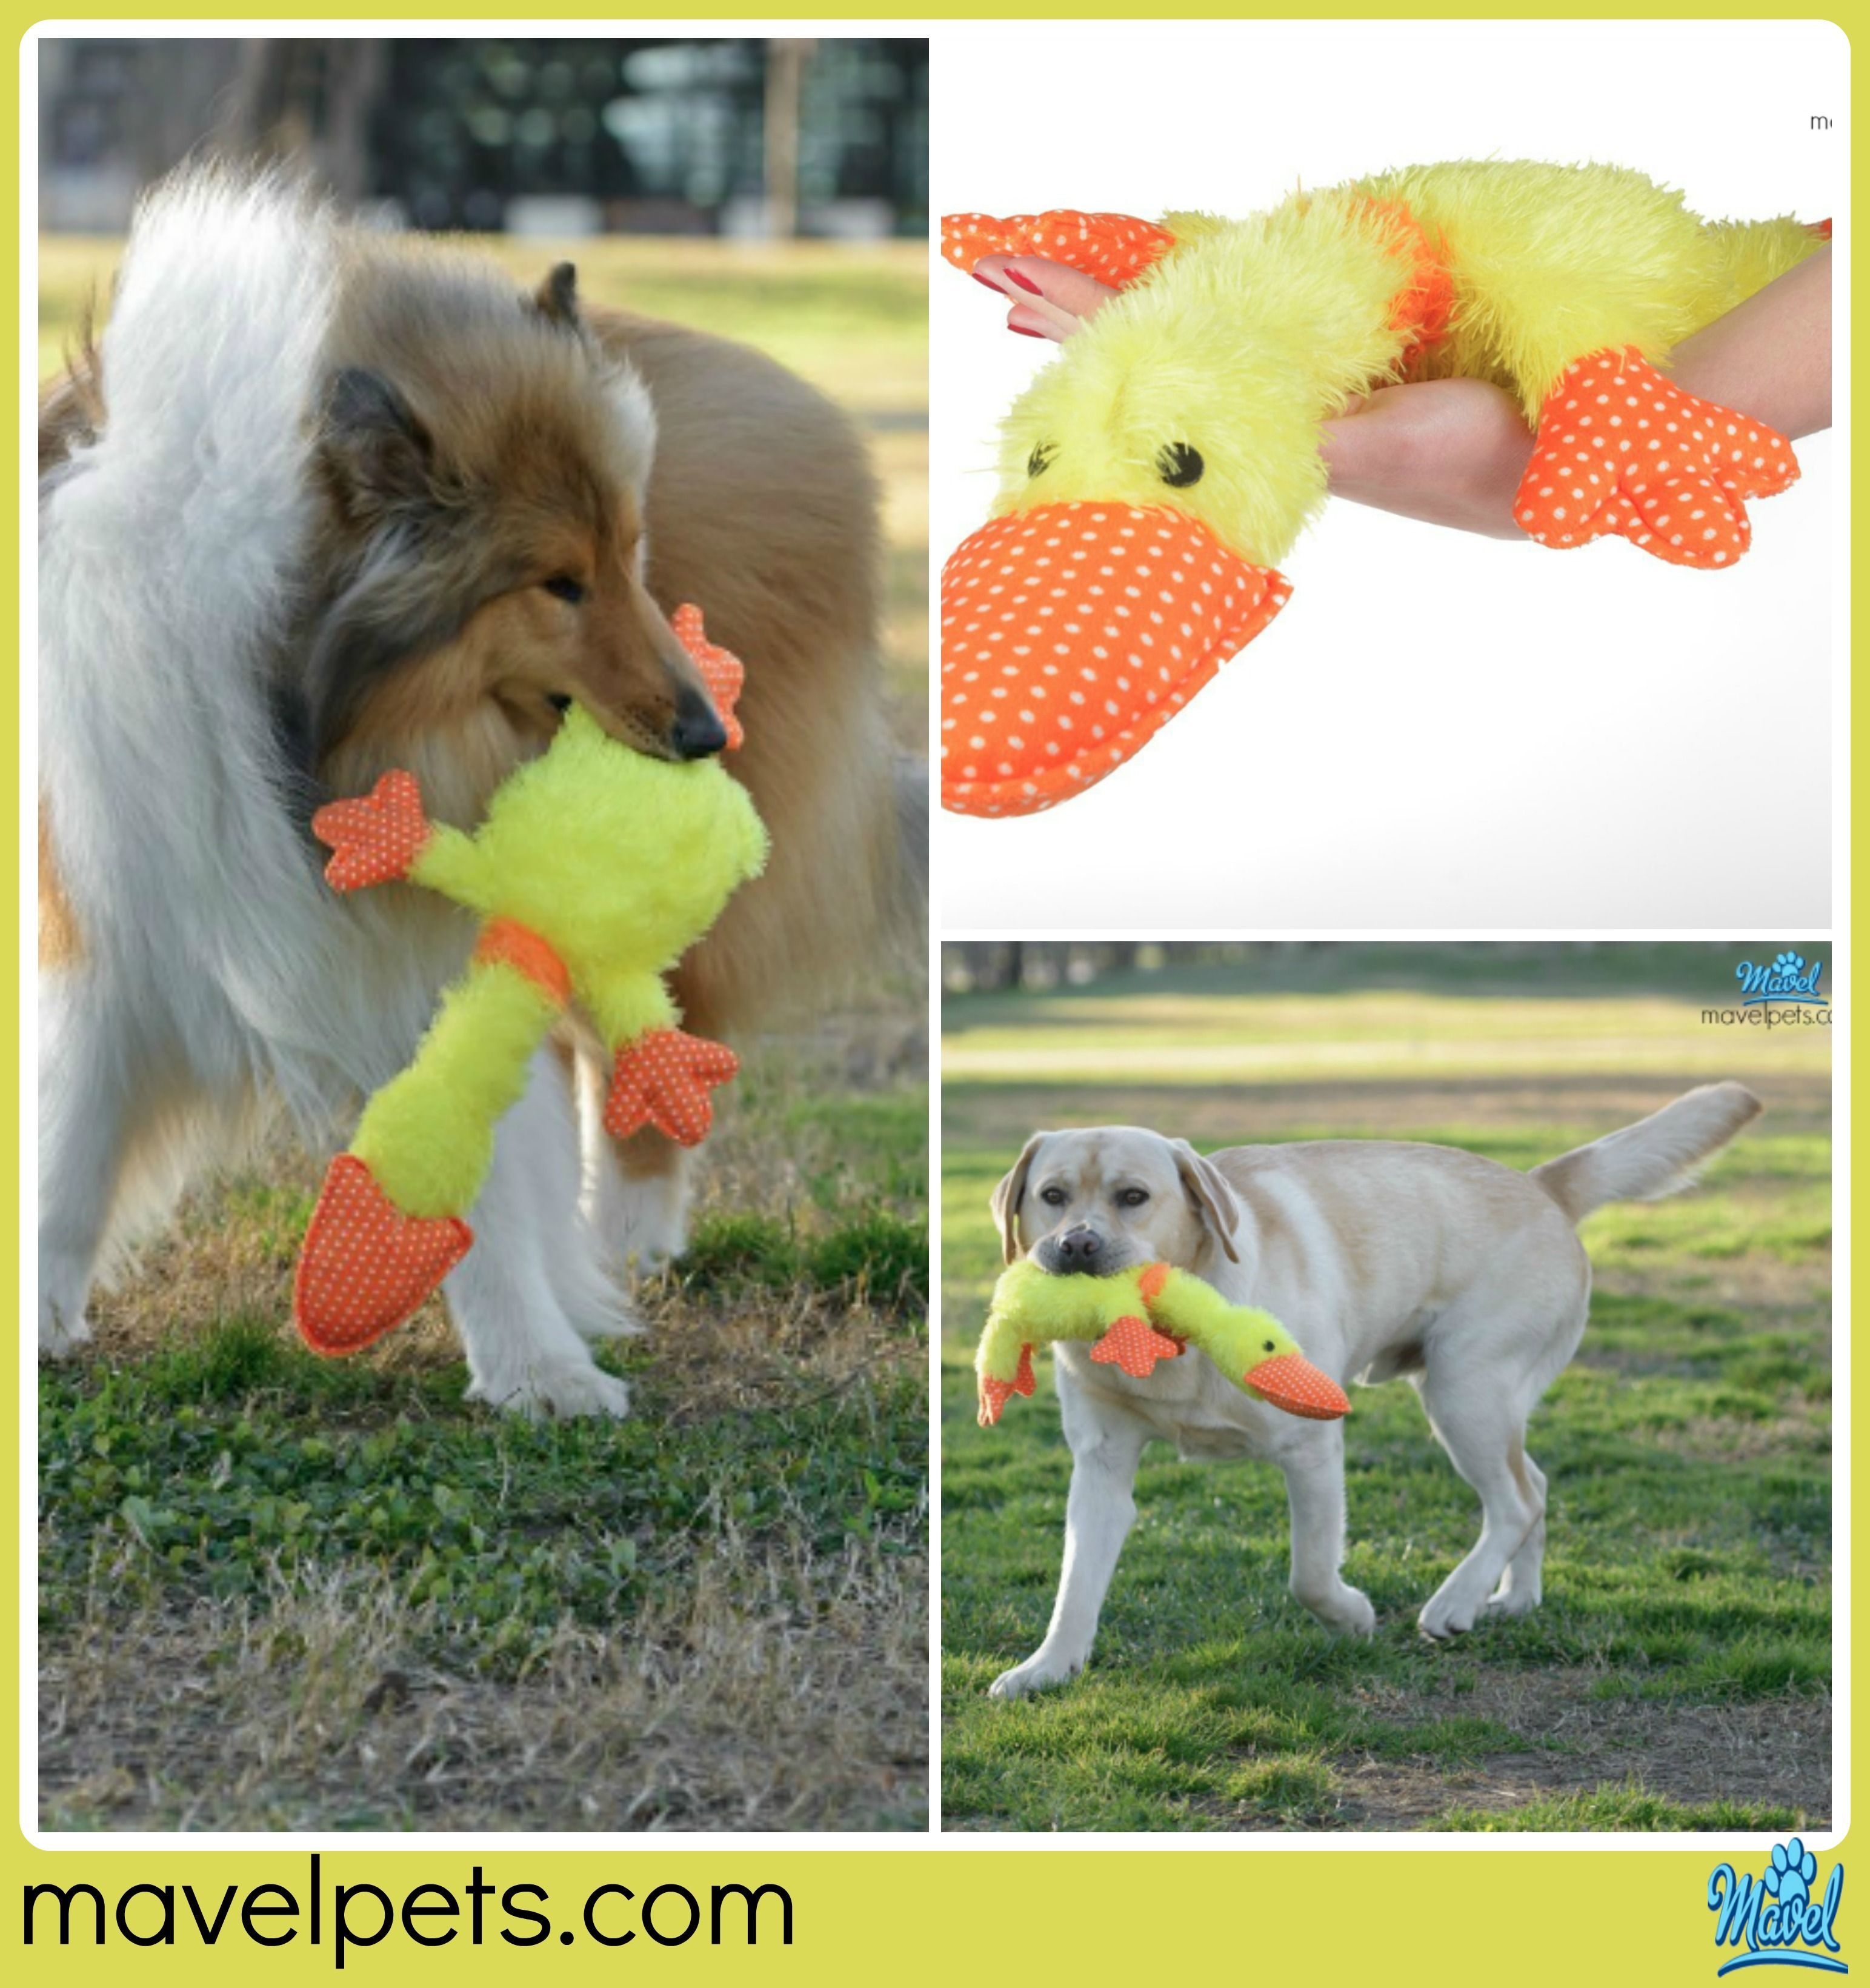 Toy For Dogs Puppies Top Cool Dog Chew Toy Squeaky Toys For